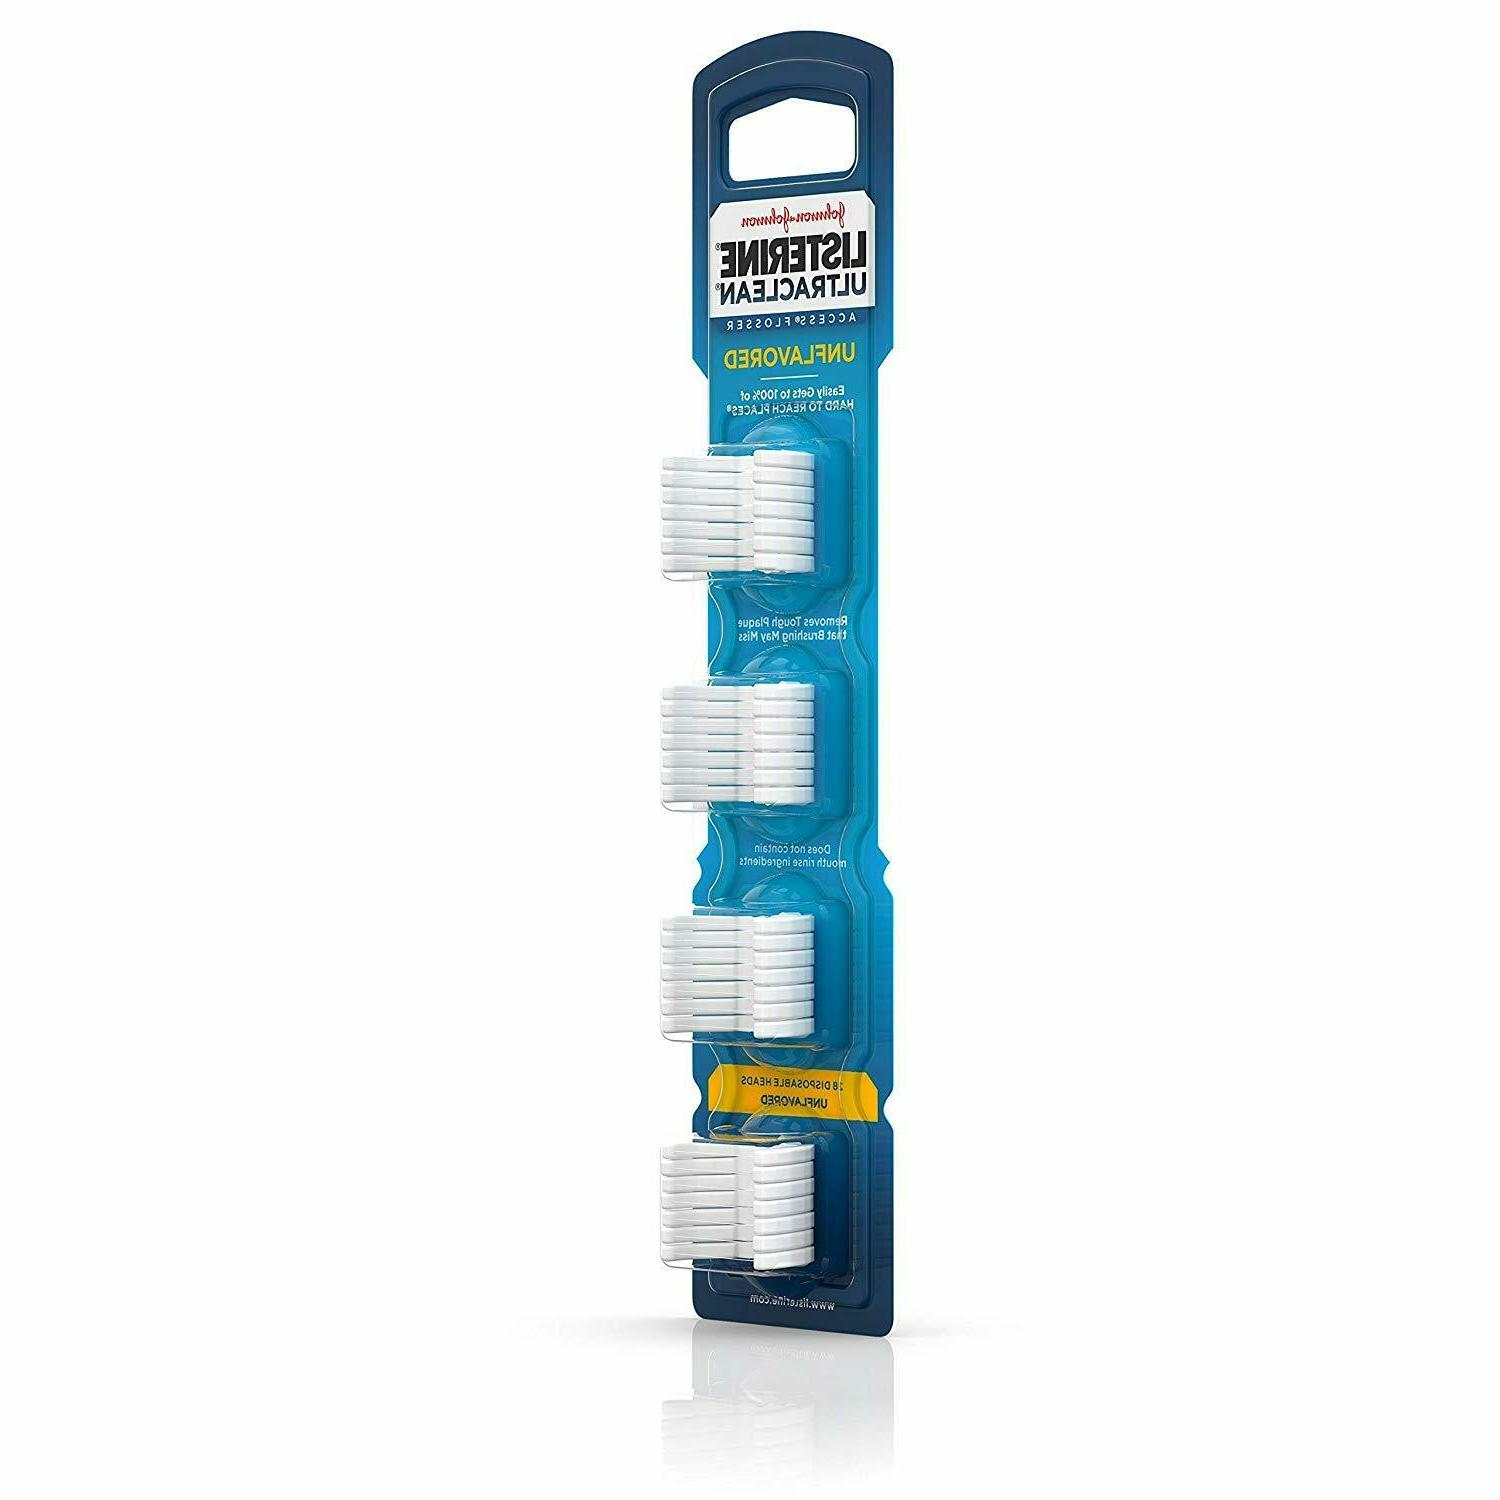 Listerine Snap-On Flosser Refill Unflavored